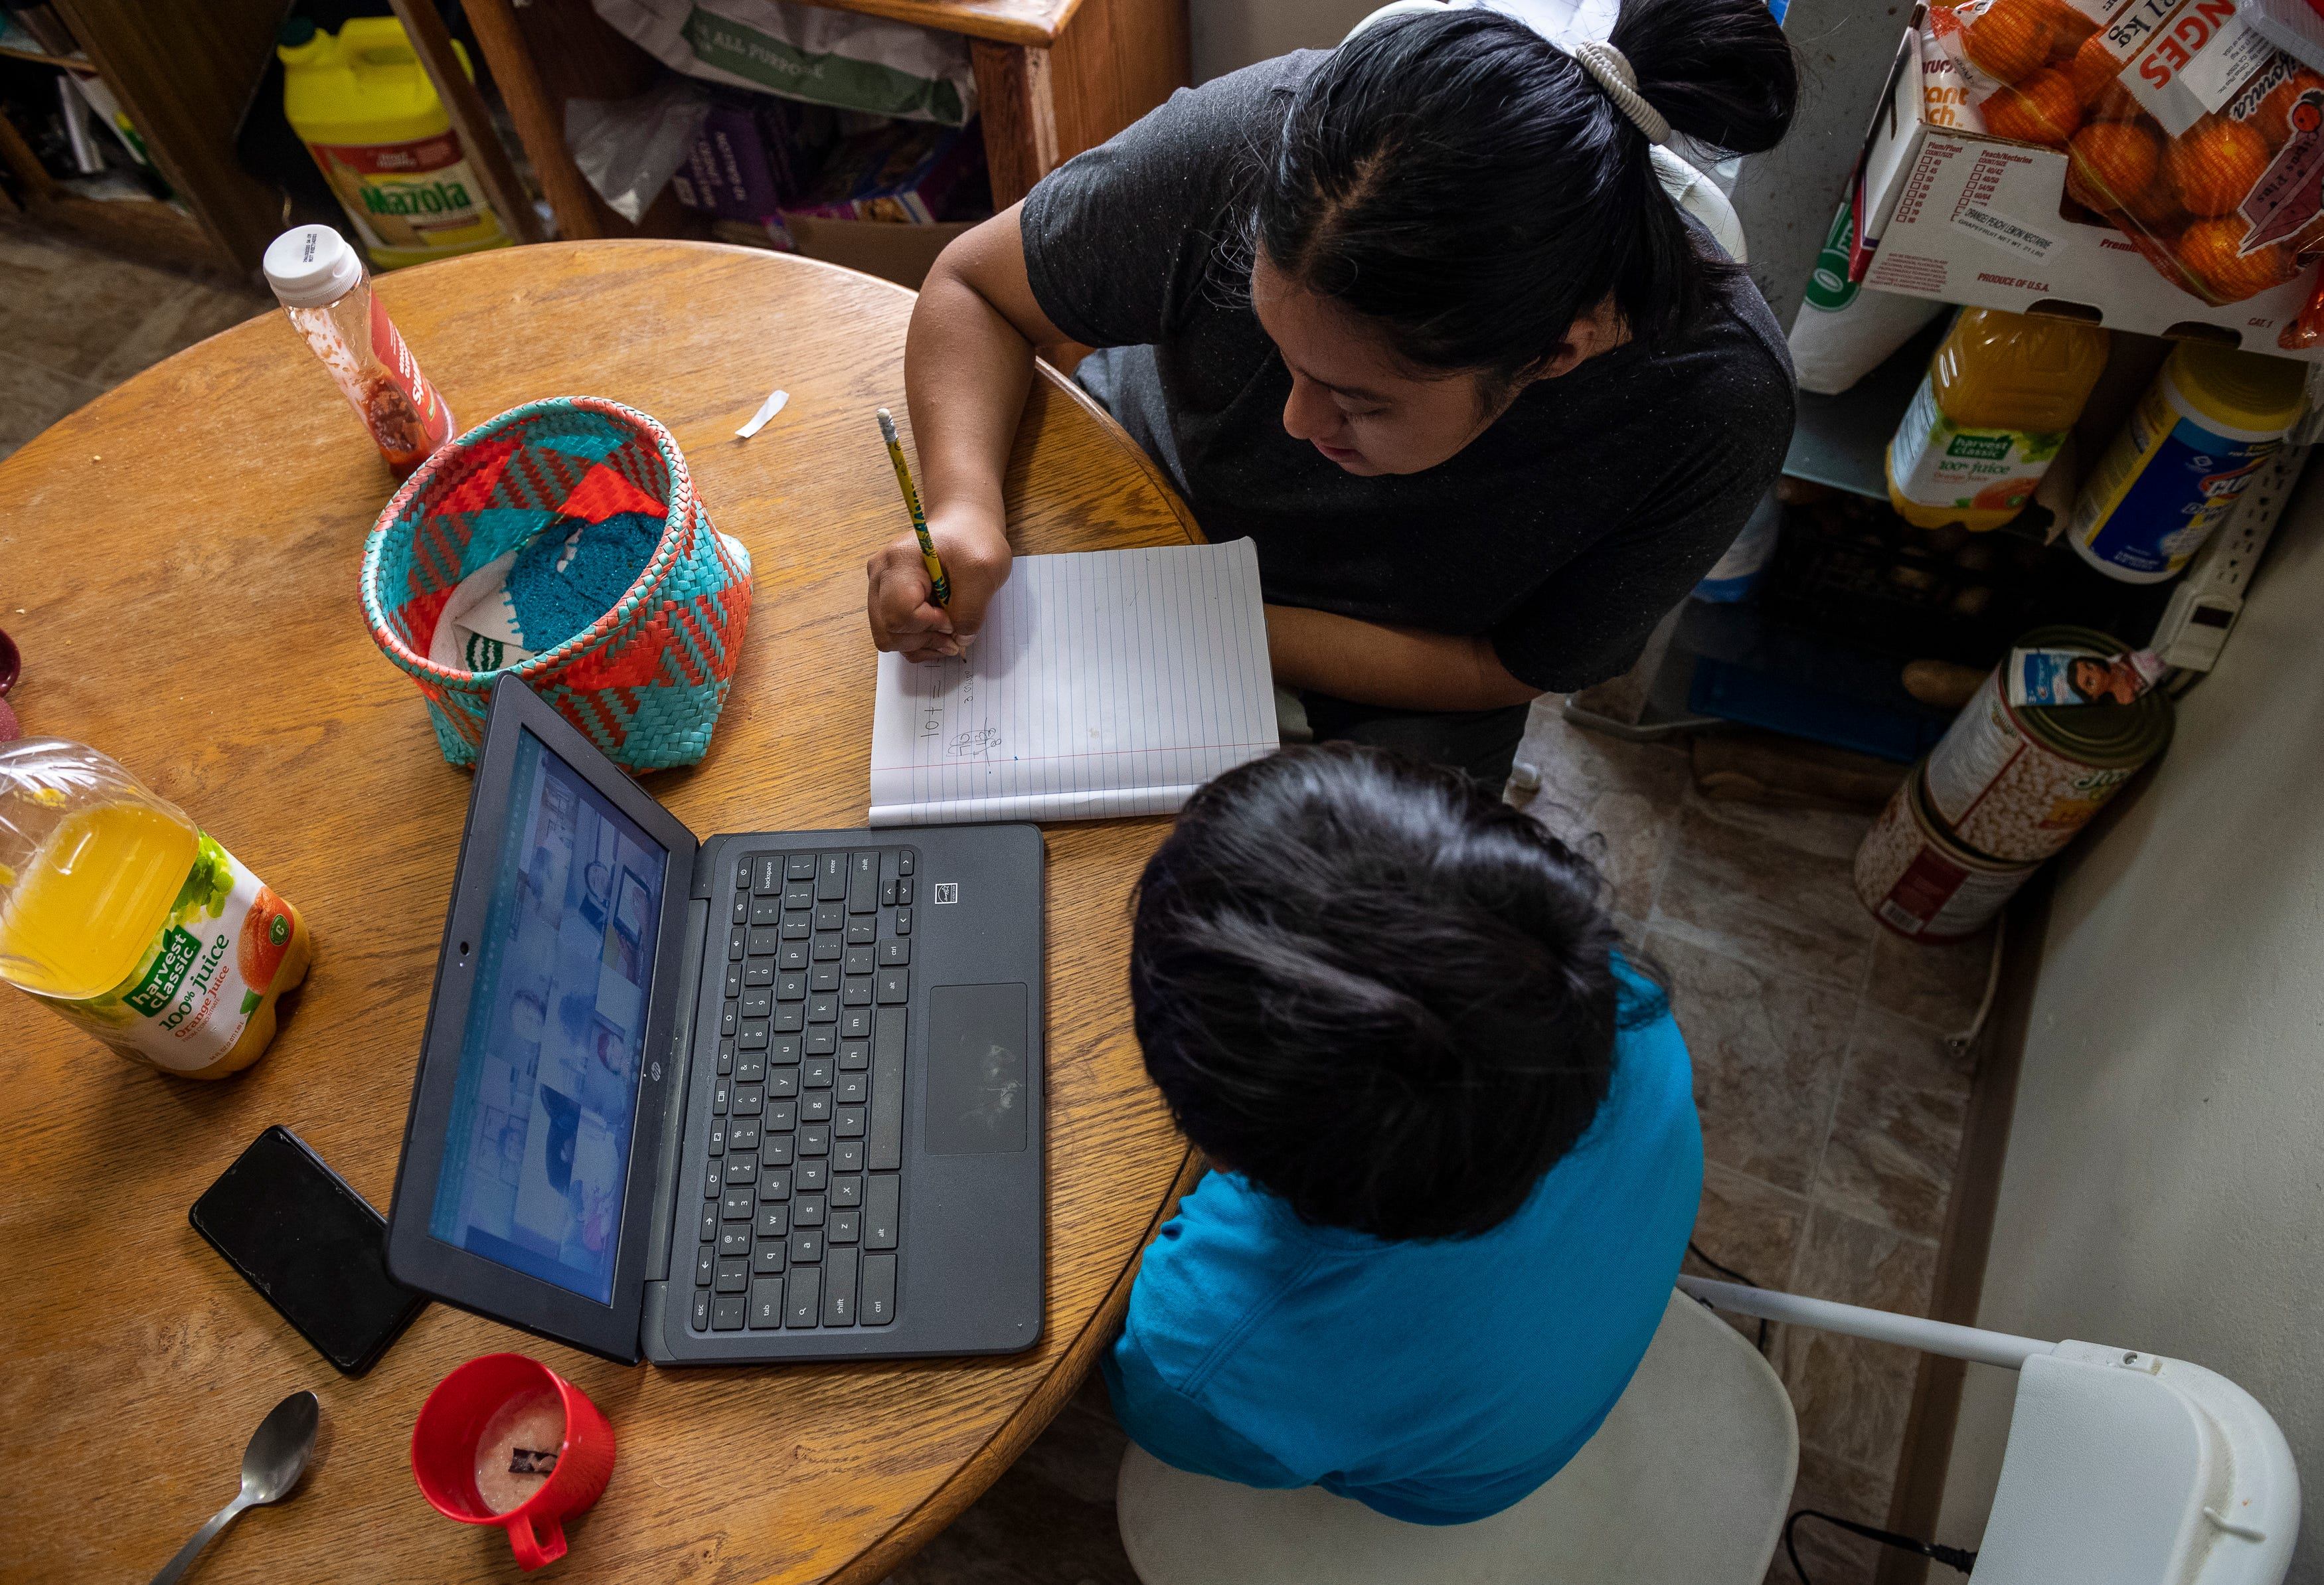 Resi Salvador, helps her younger brother Hugo Salvador, with his virtual class work in Salinas, Calif., on Thursday, Aug. 13, 2020.